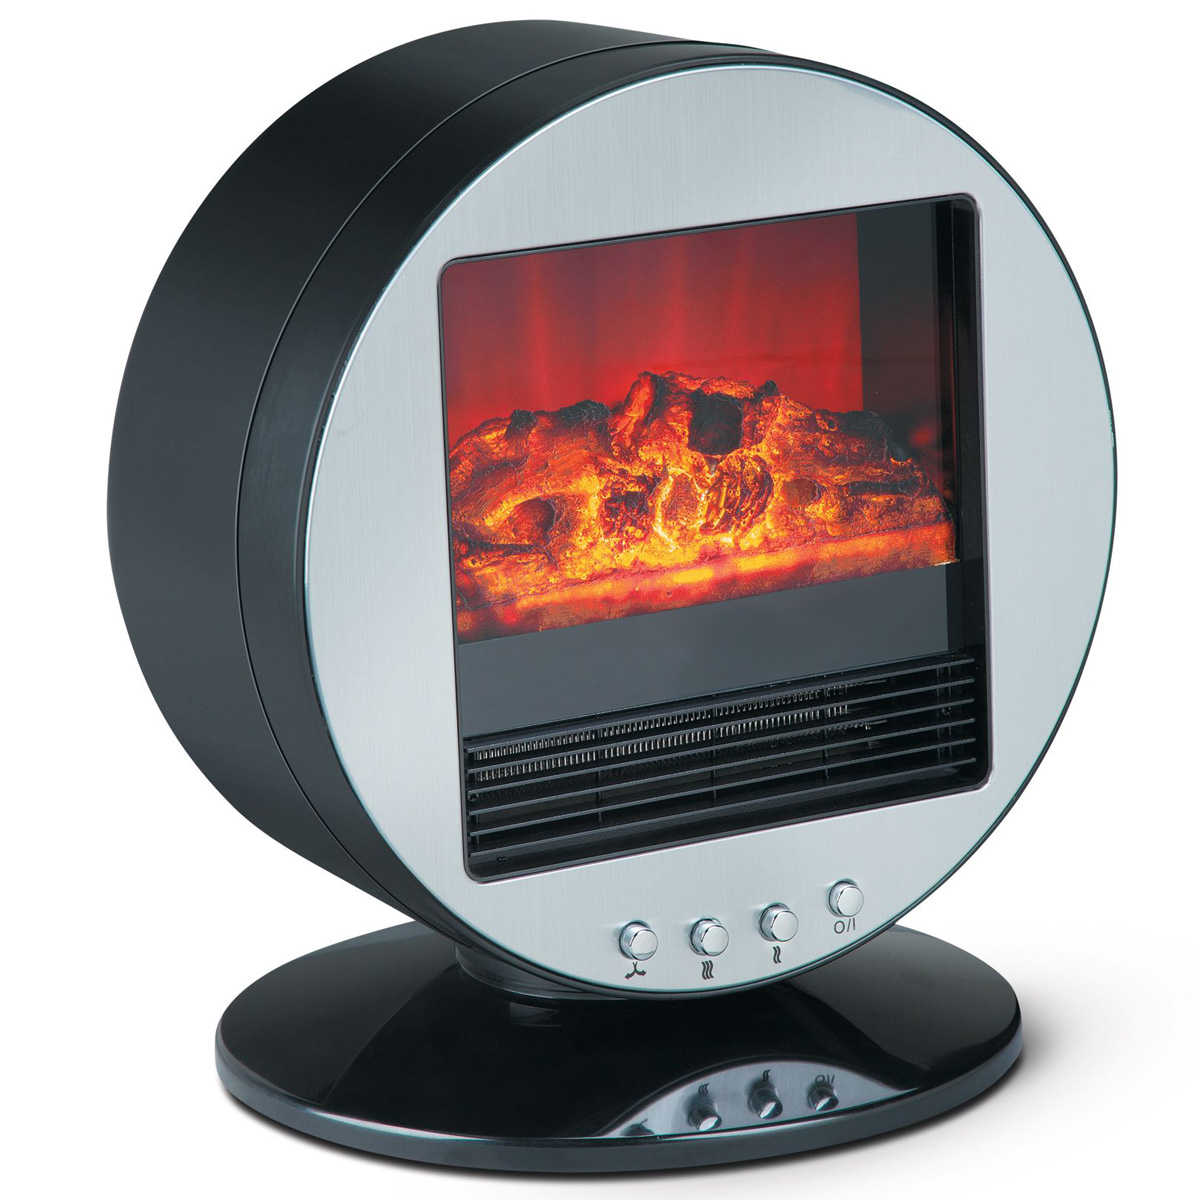 stone heater electric of make image choice fireplace heaters gazebo best the decoration